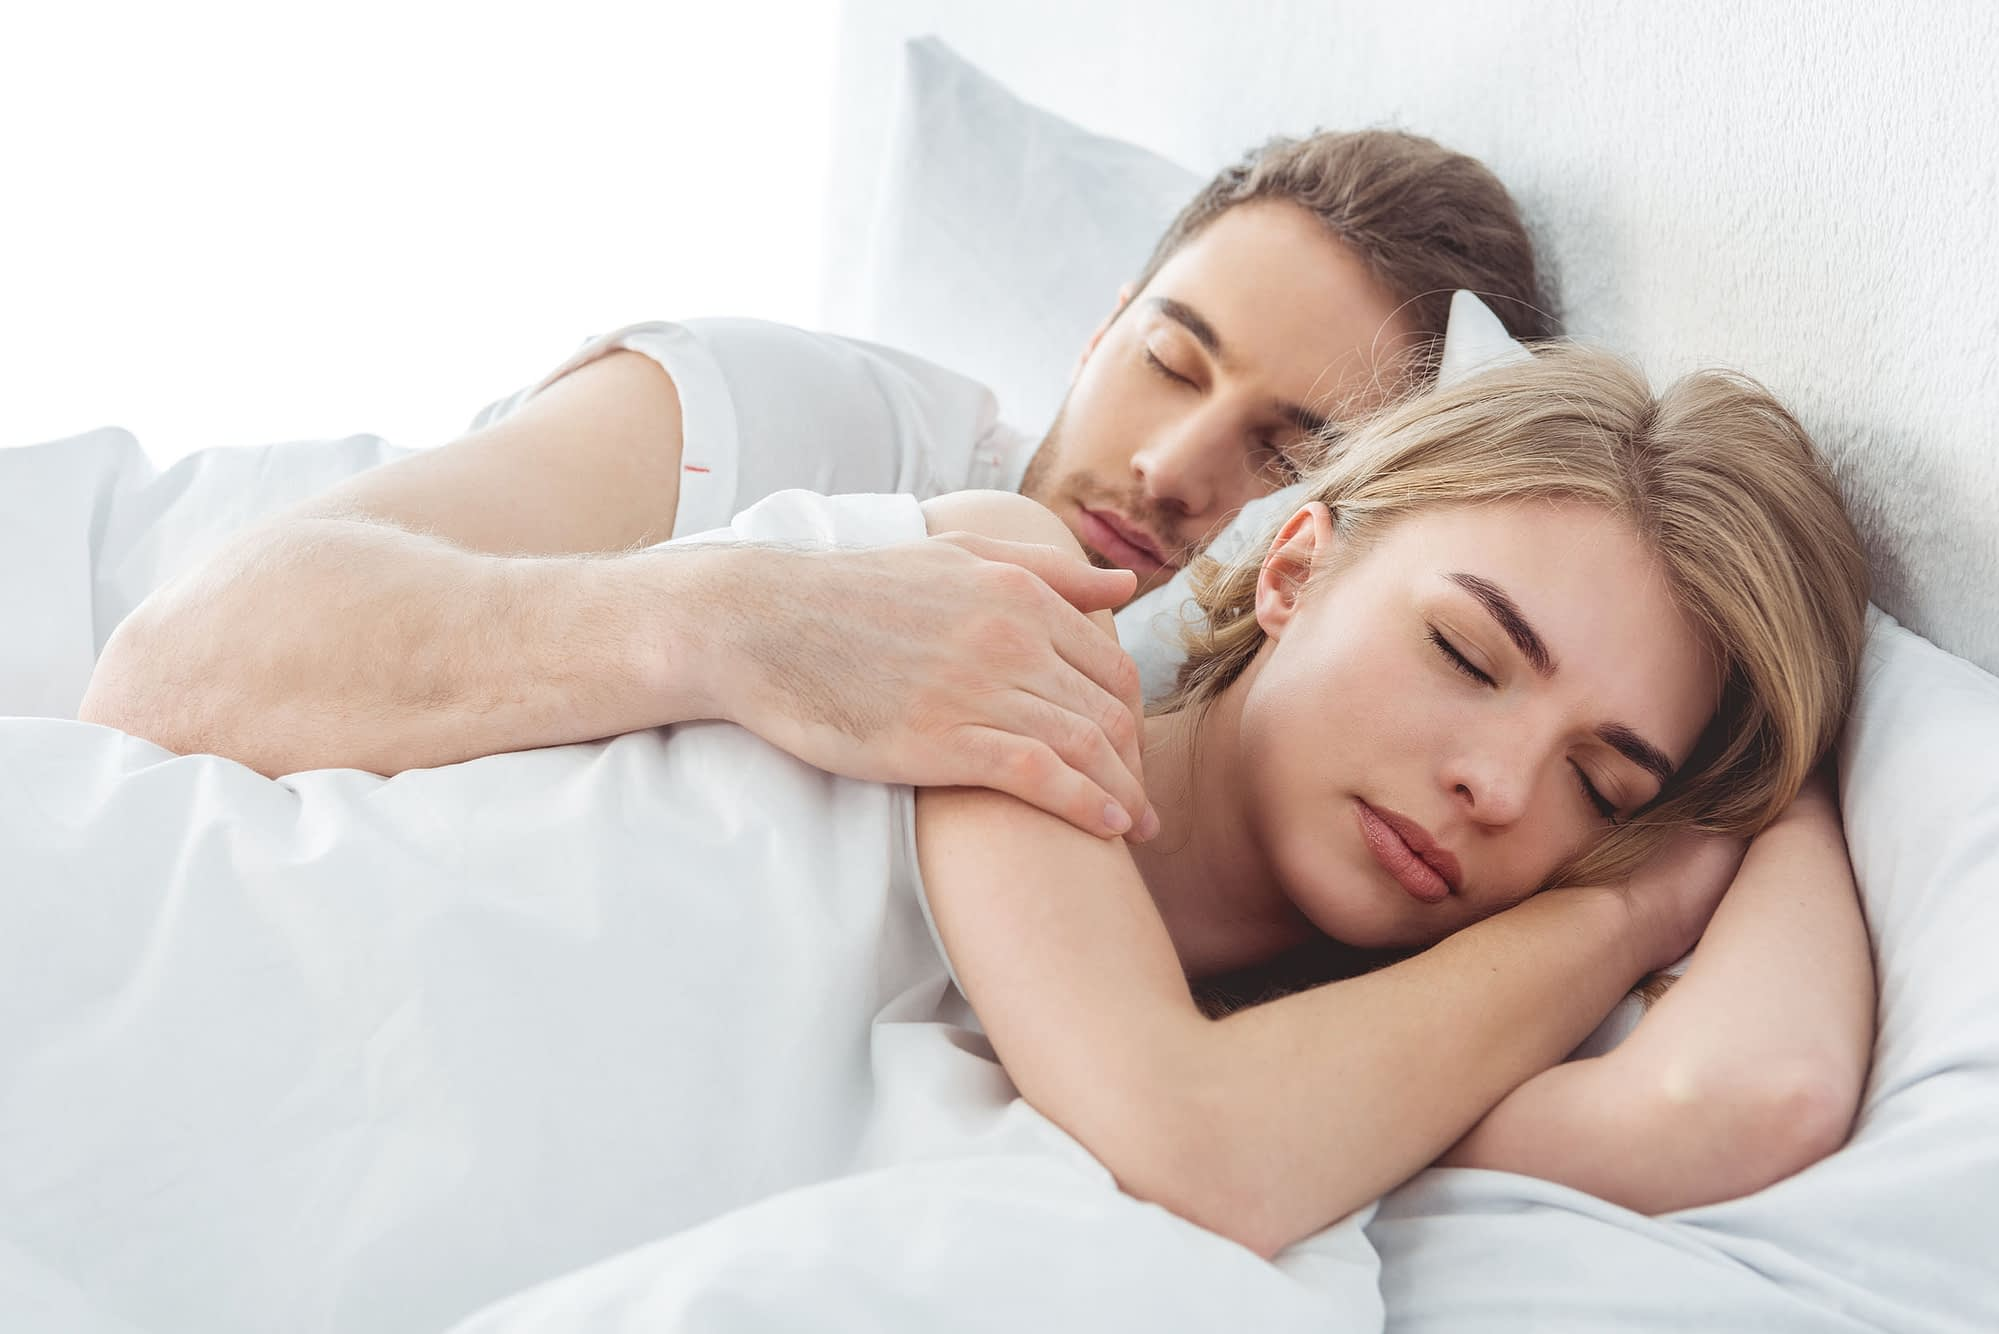 What does it mean when your boyfriend watches you sleep?